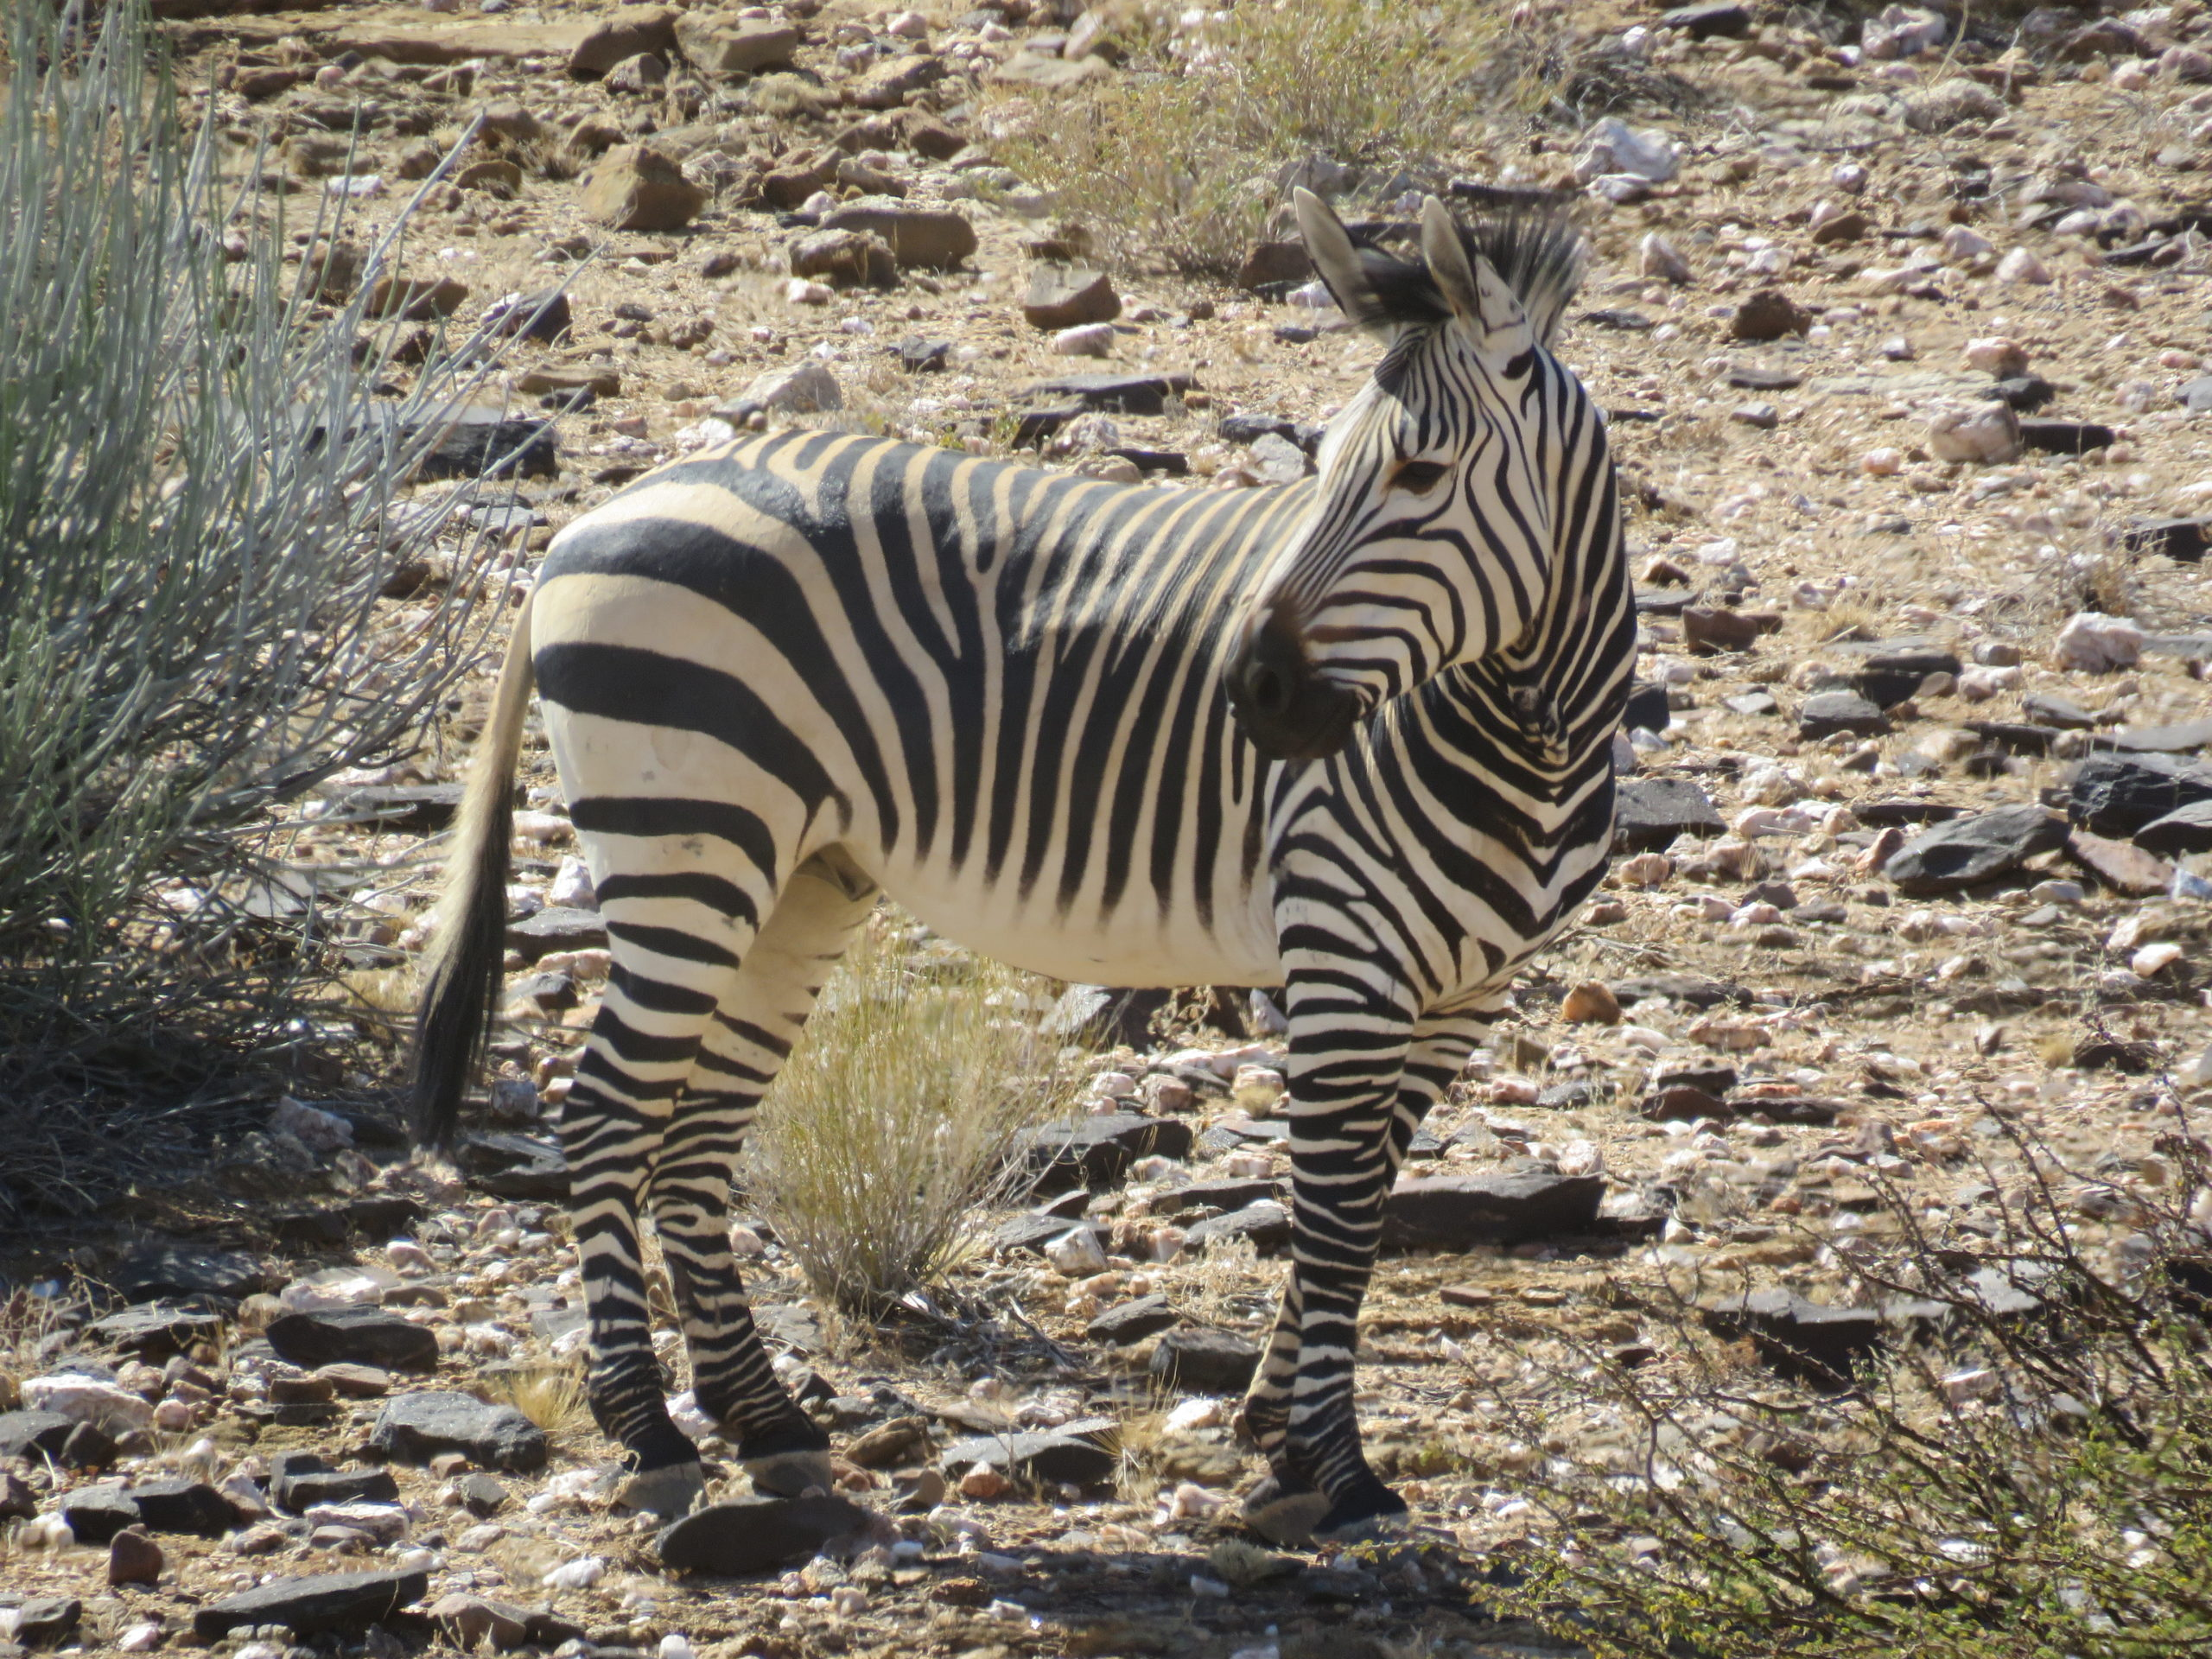 Zebra in Augrabies National Park - 2017.jpg